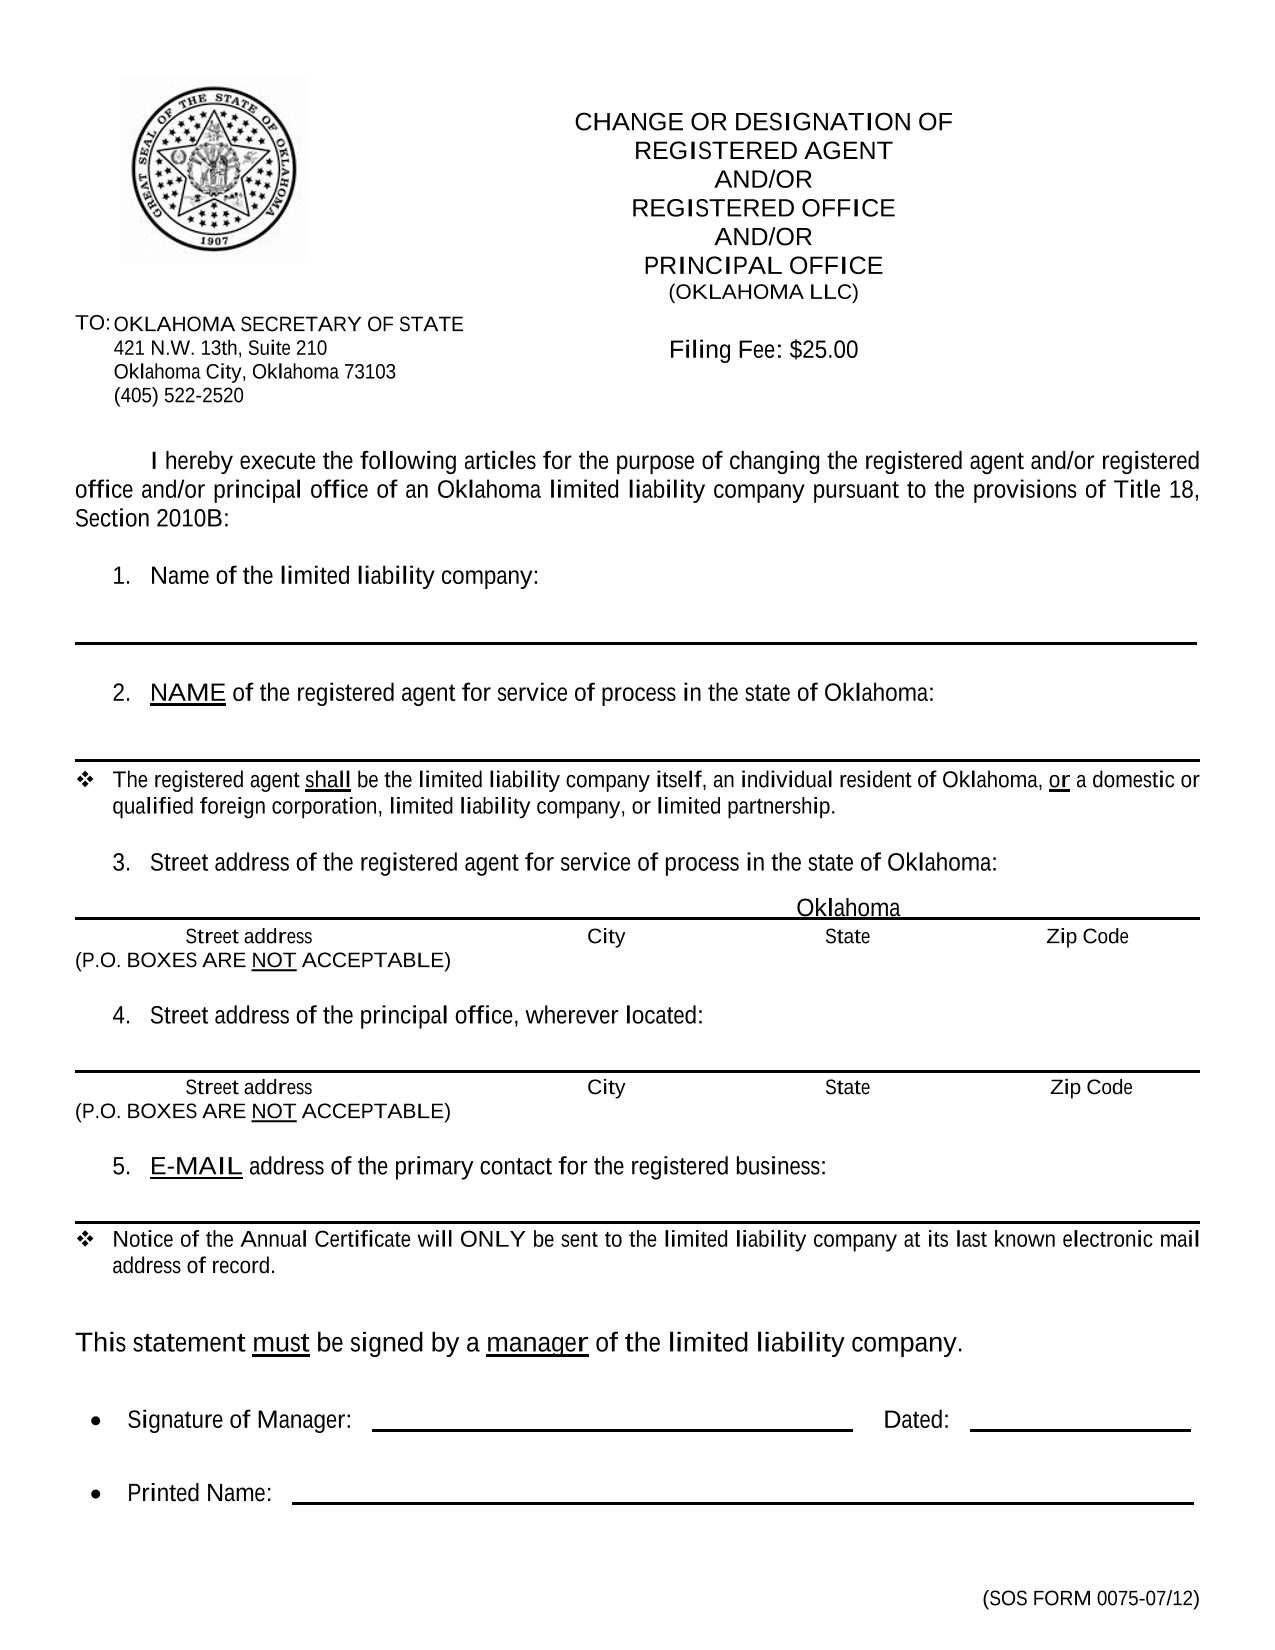 oklahoma-llc-notice-of-change-of-registered-agent